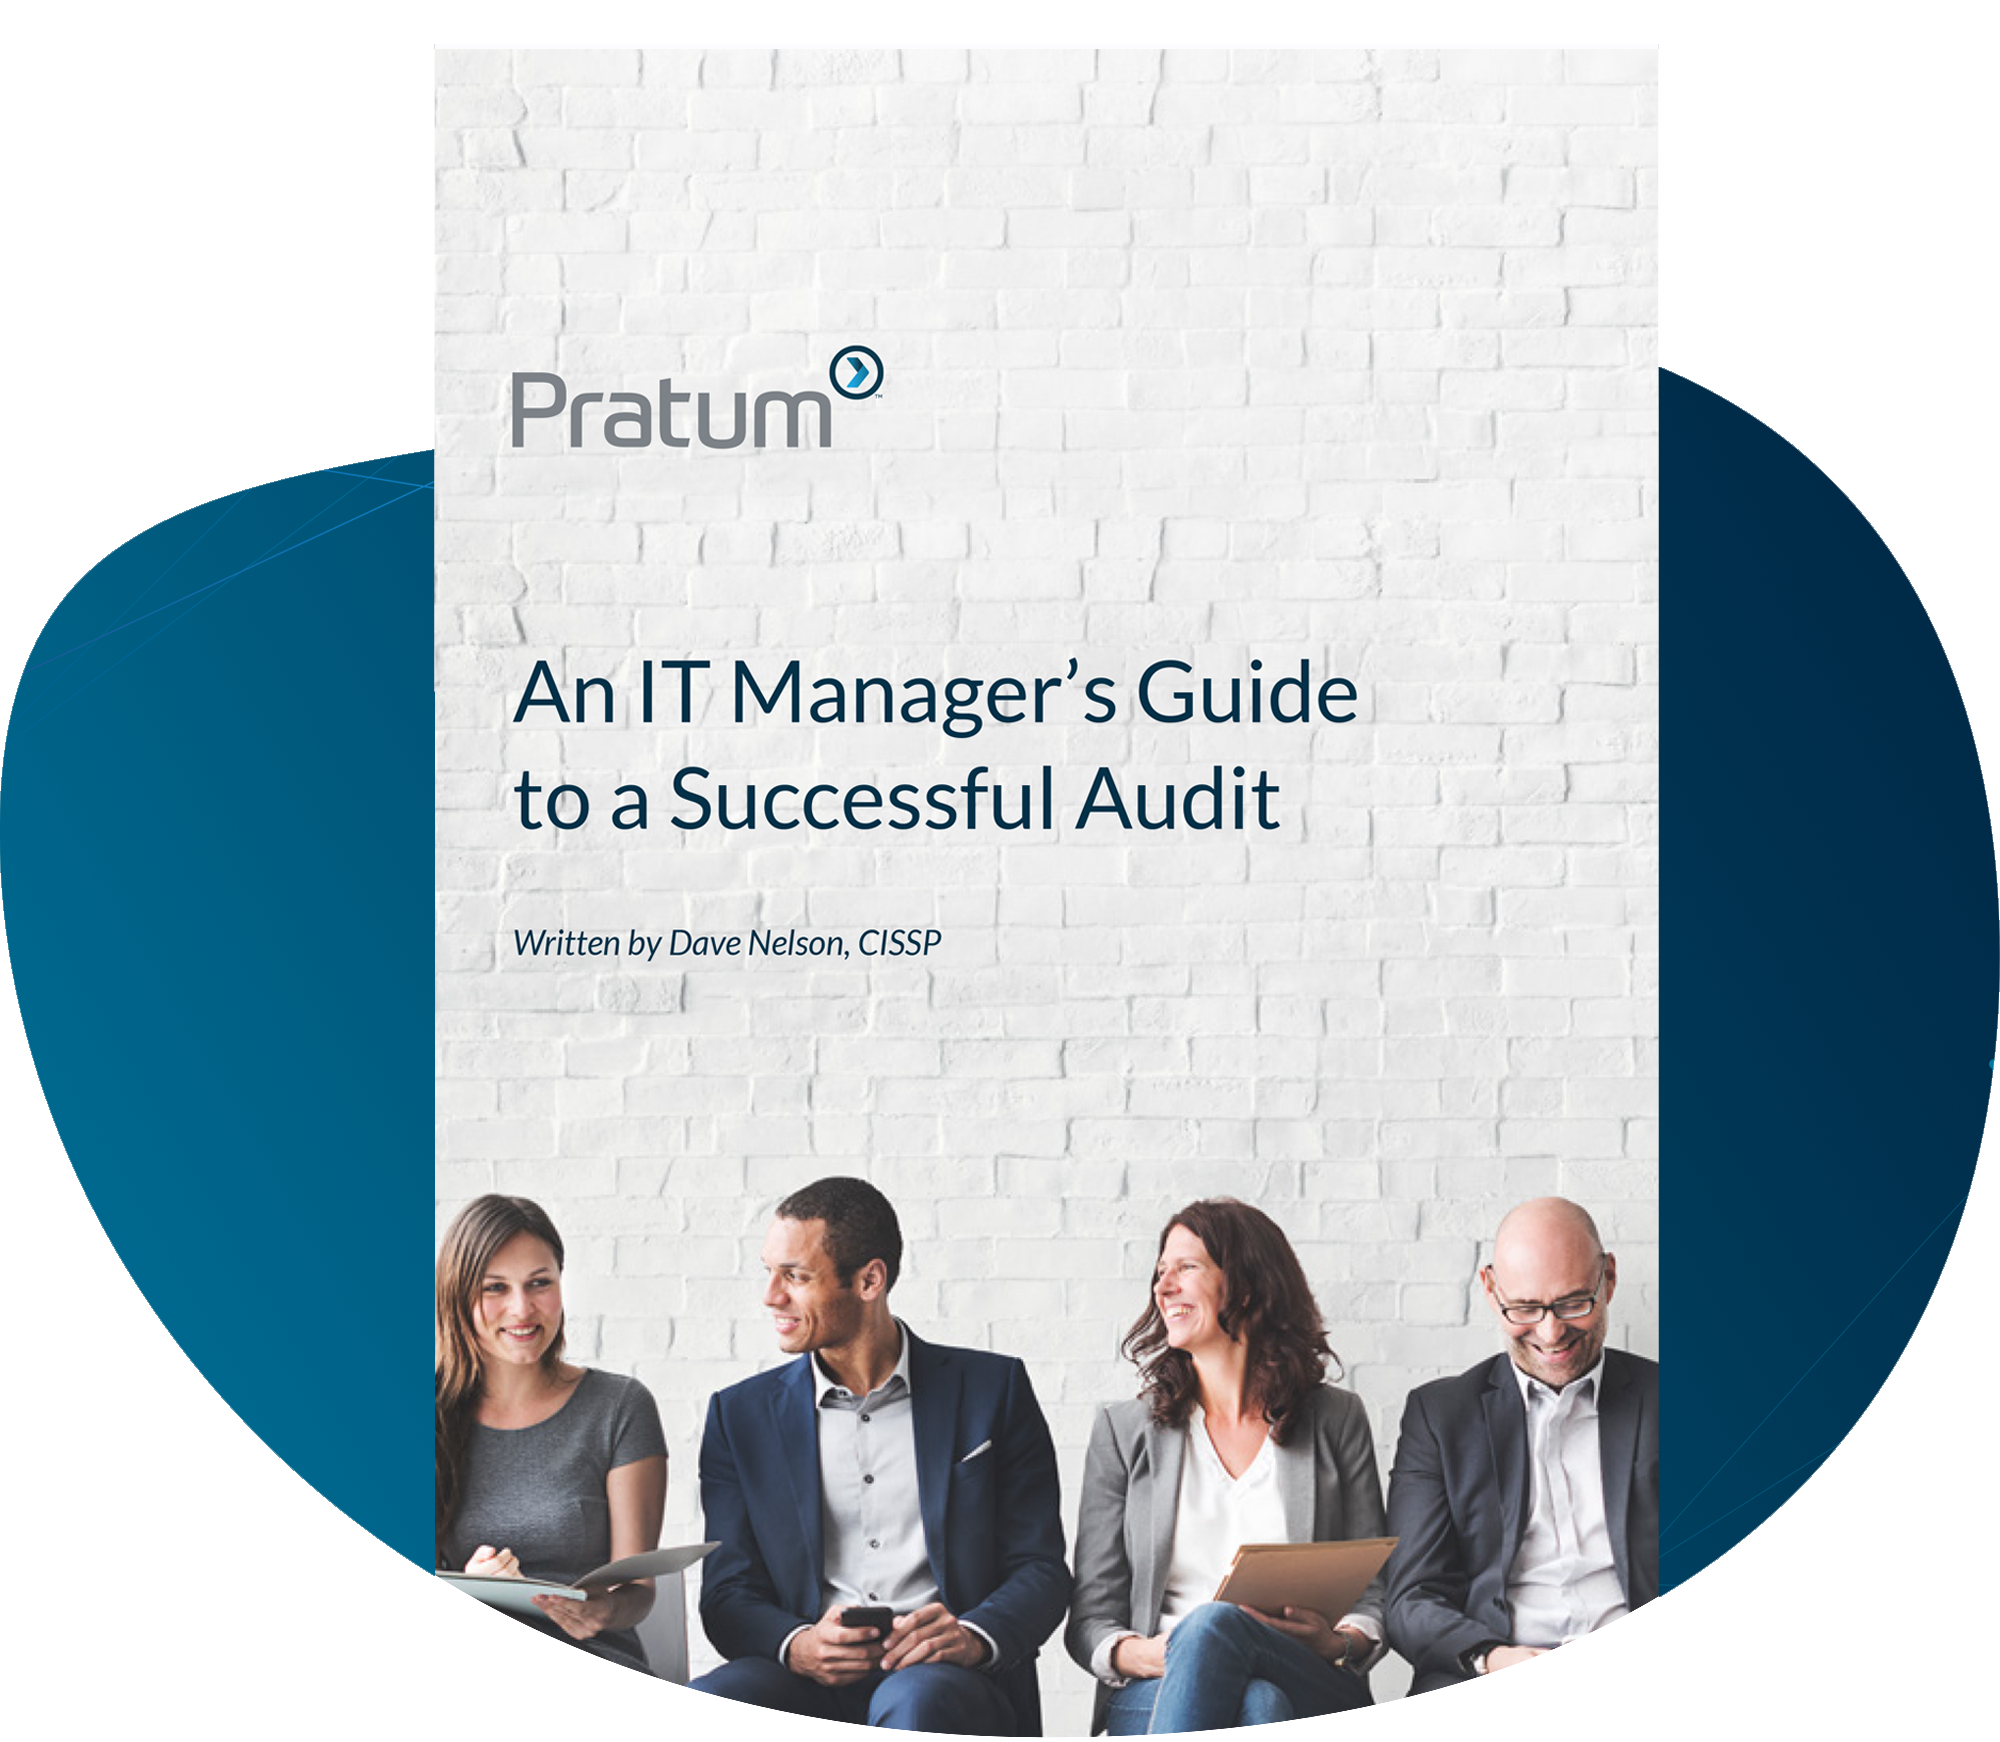 IT Managers Guide to a Successful Audit Email Image_Pratum_20200429_PXX